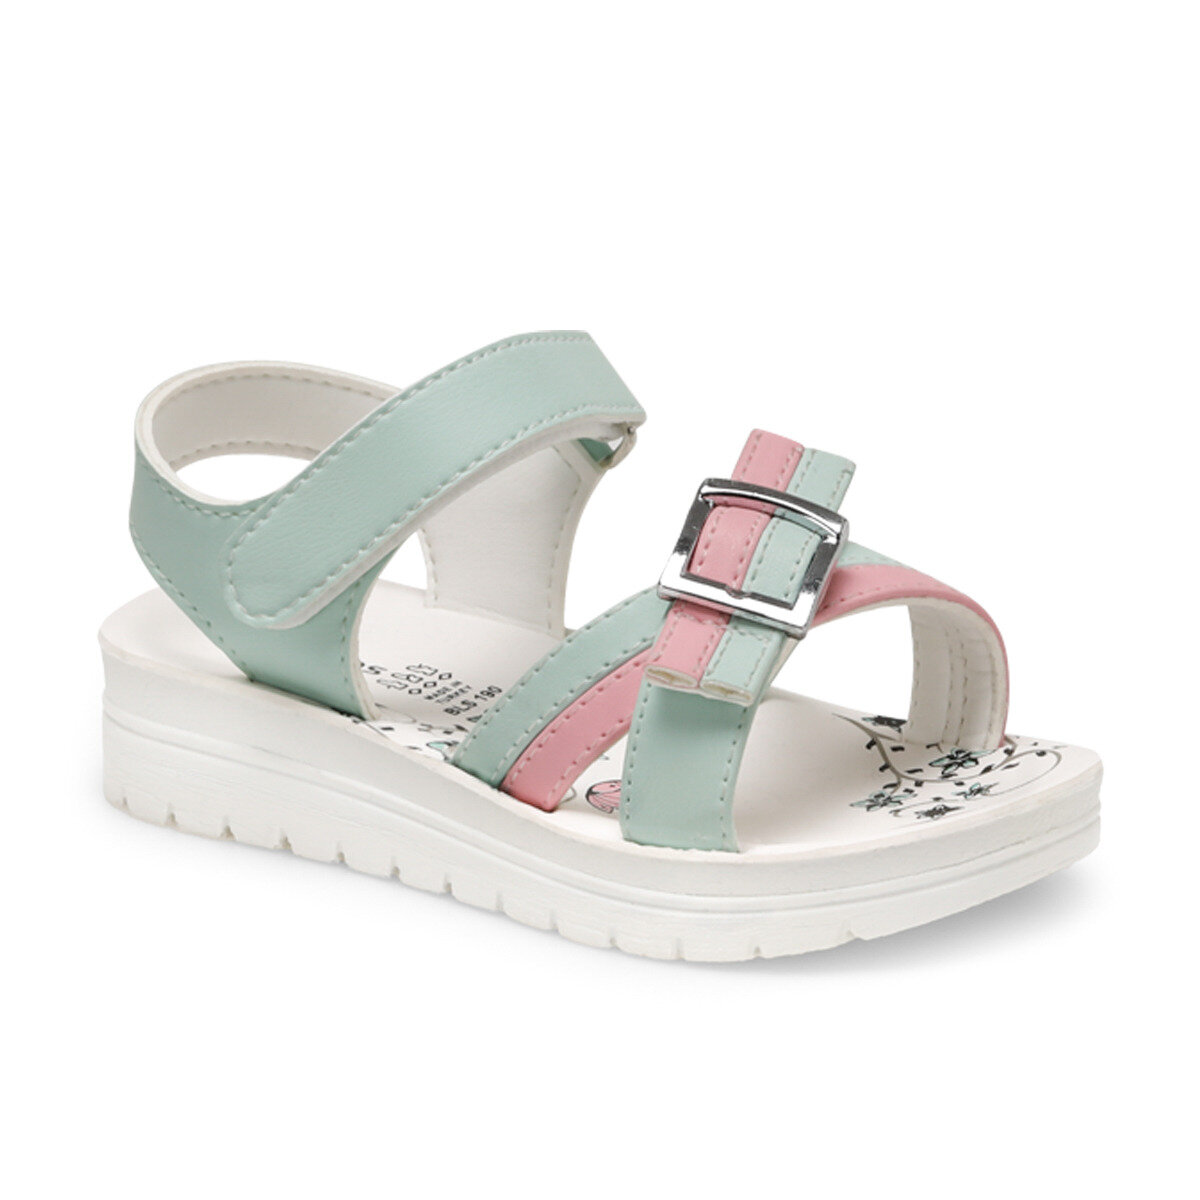 FLO Girls Sandals Gladiator Solid Color Sweet Soft Children's Beach Shoes Kids Summer Sandals Princess Fashion Cute High Quality BLS190 Turquoise